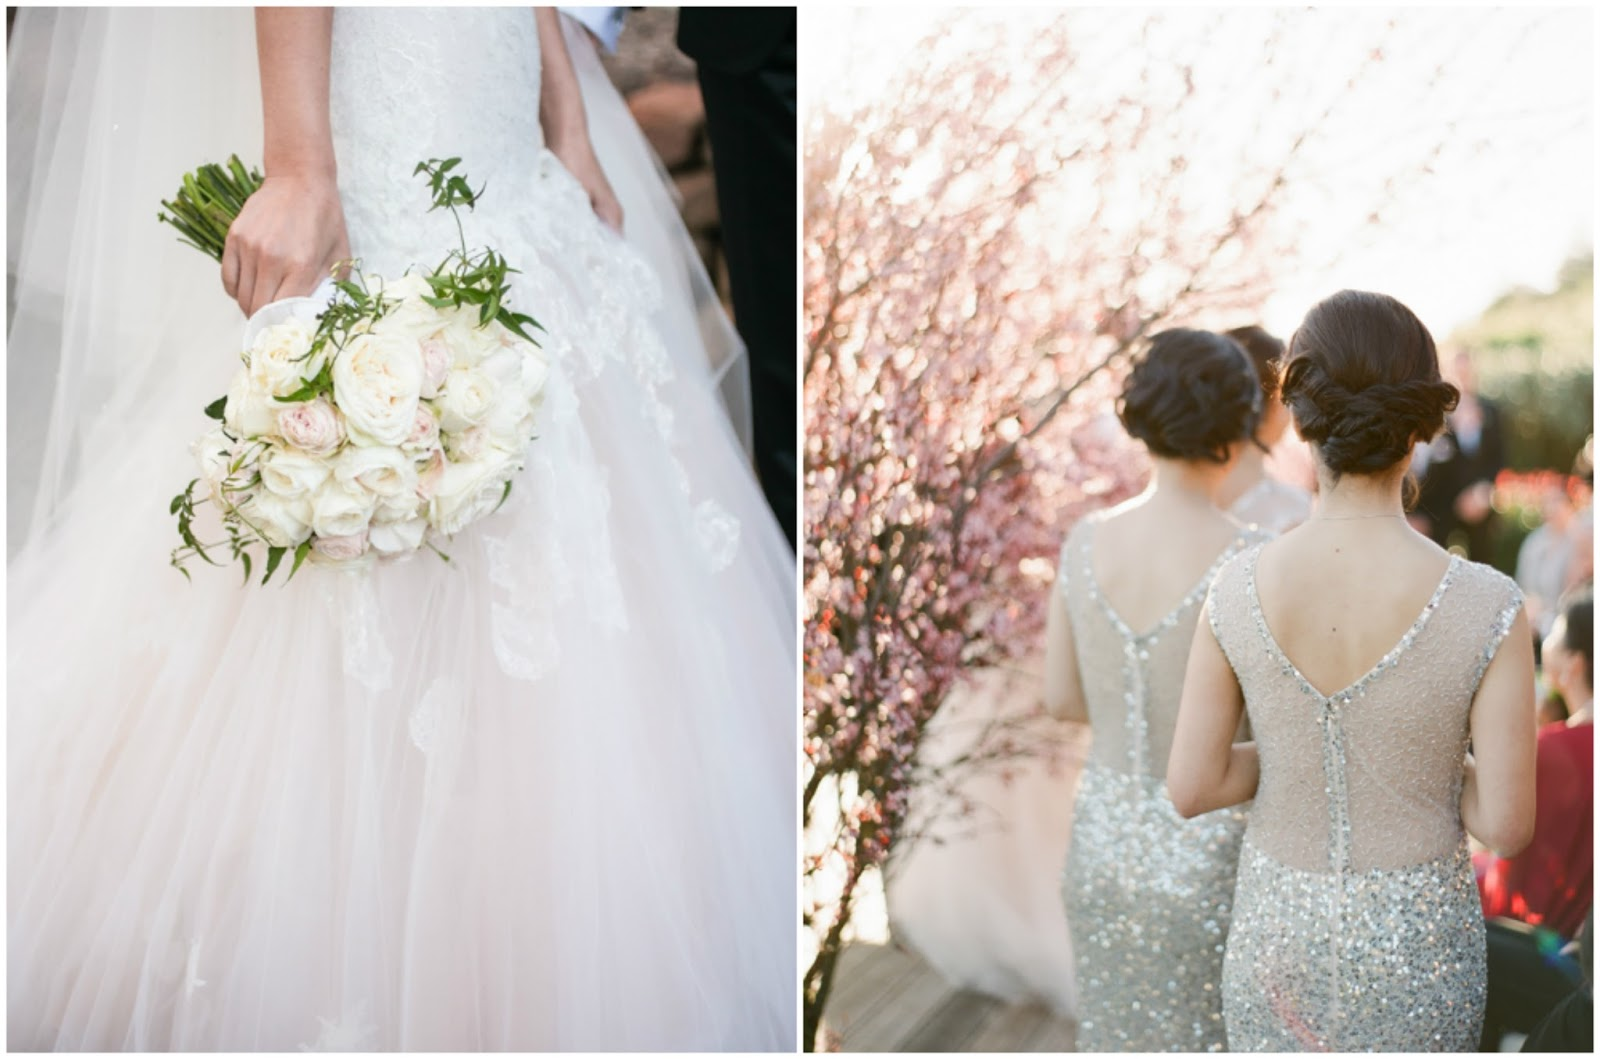 Practical Wedding Advice from Top San Francisco Wedding Planner